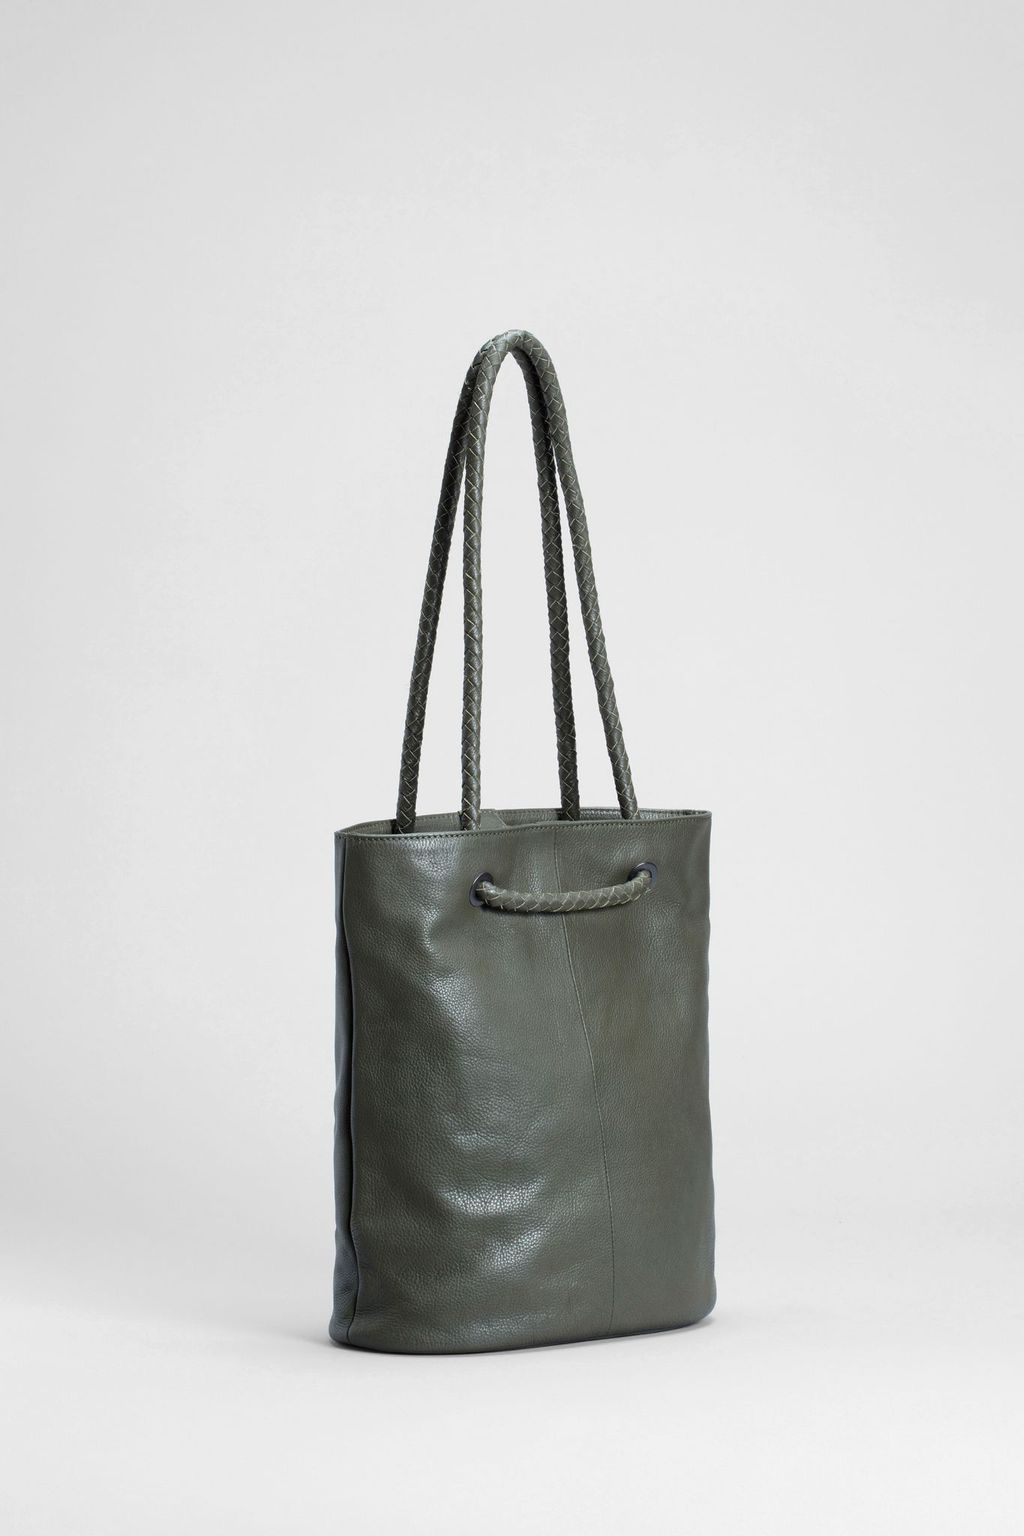 Hede Tote - Green & Black